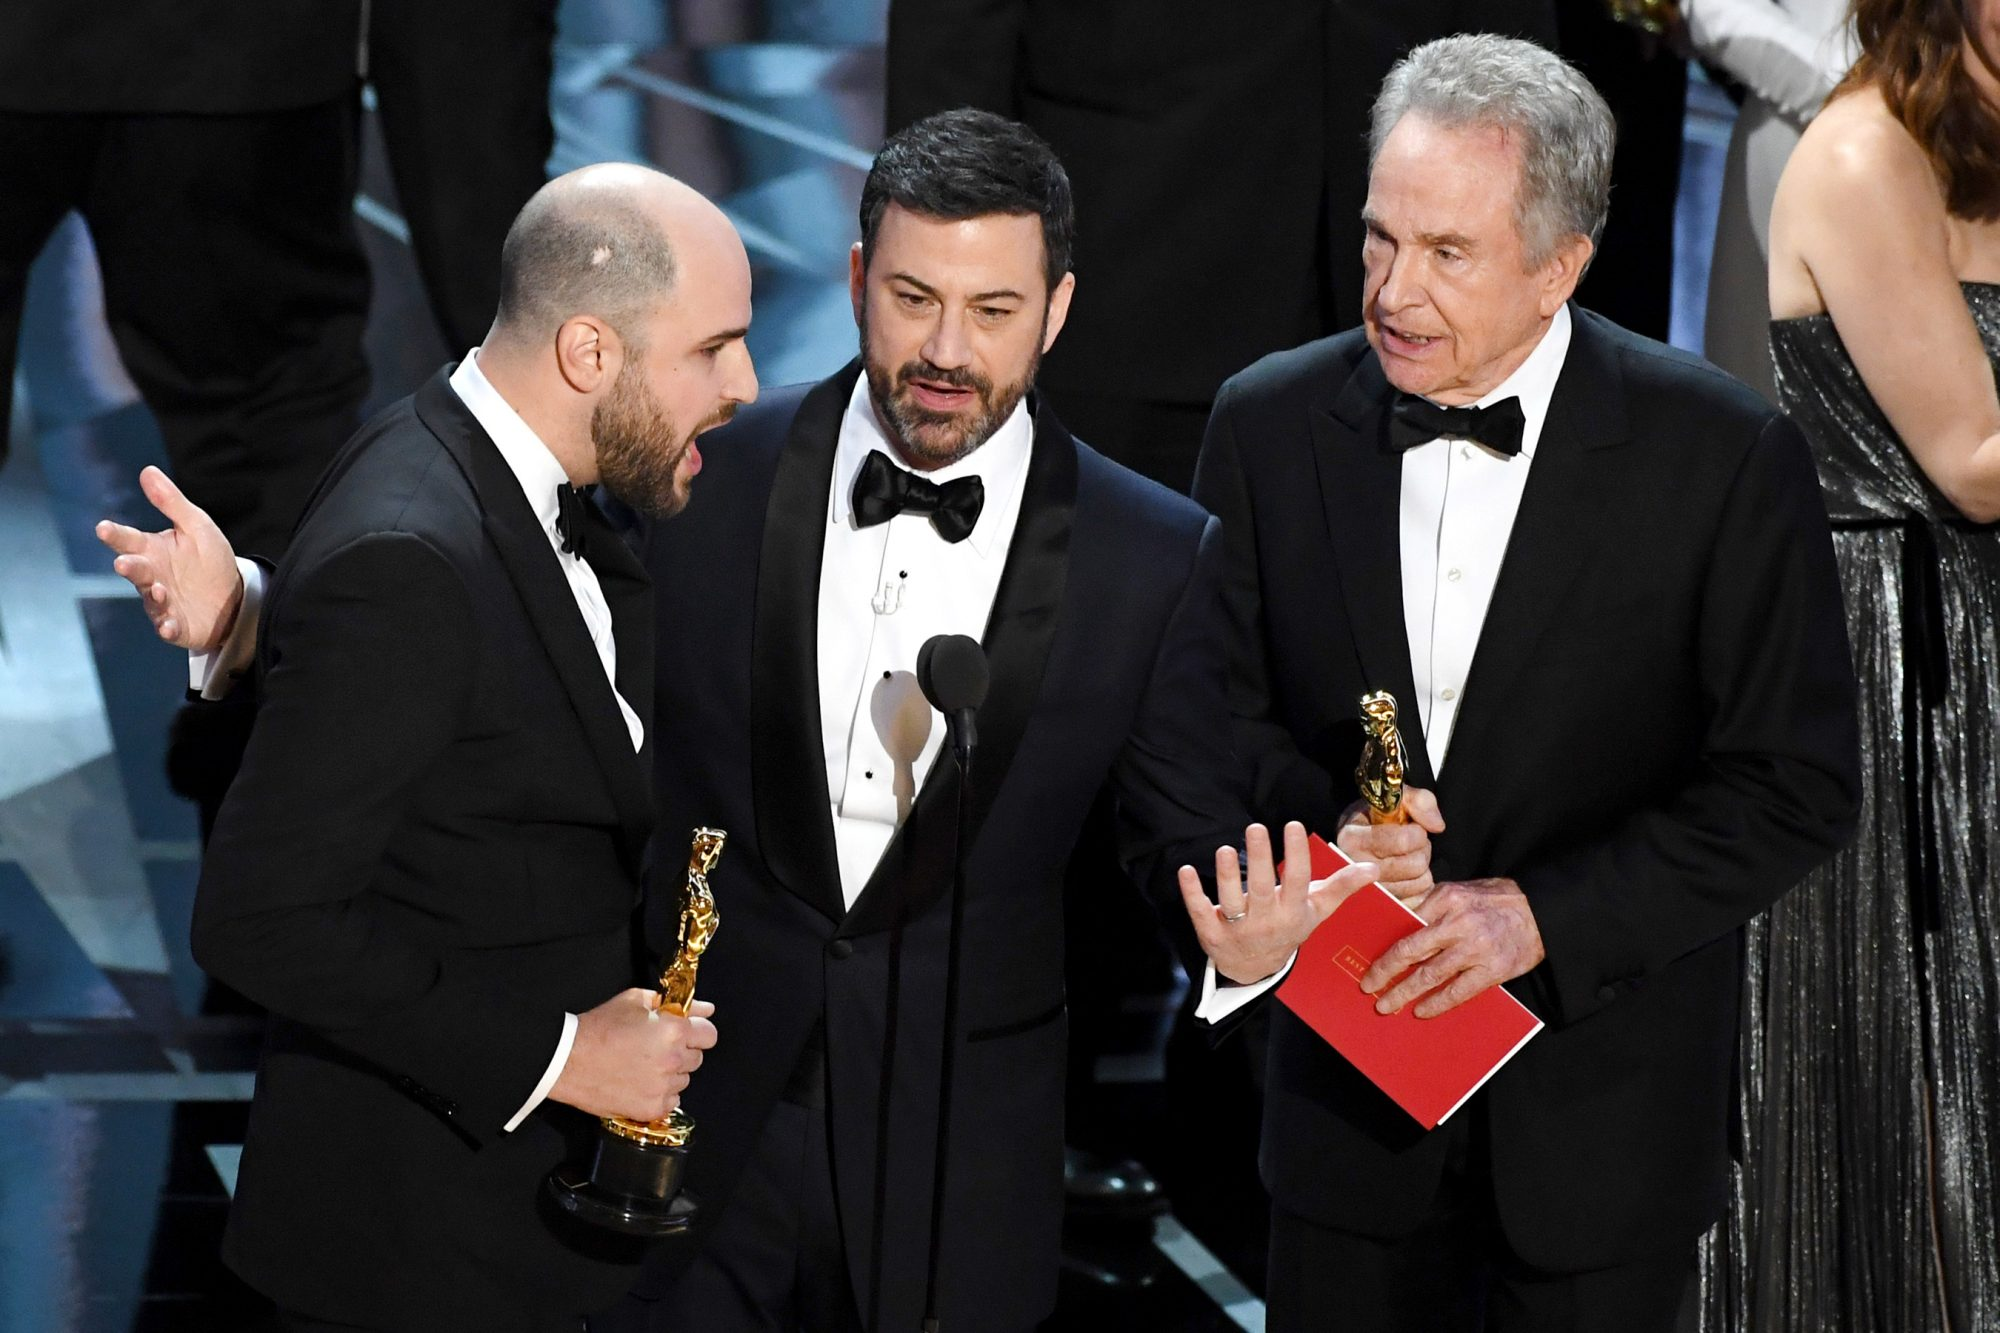 Jimmy Kimmel at Oscars during Best Picture Annoucement